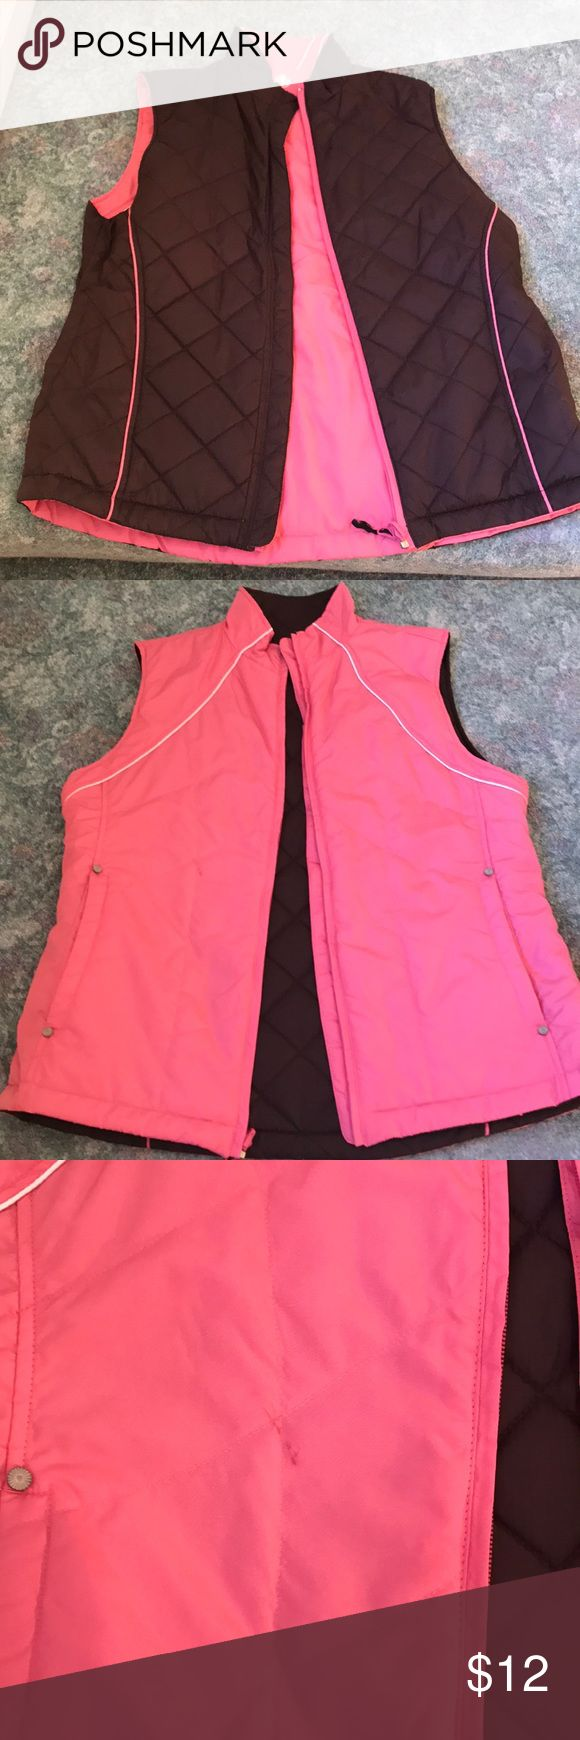 Sun mountain reversible bubble vest Size large pink and chocolate brown reversible bubble vest. Small stain can be seen on photos on the one side. Other side in great condition sun mountain Jackets & Coats Puffers